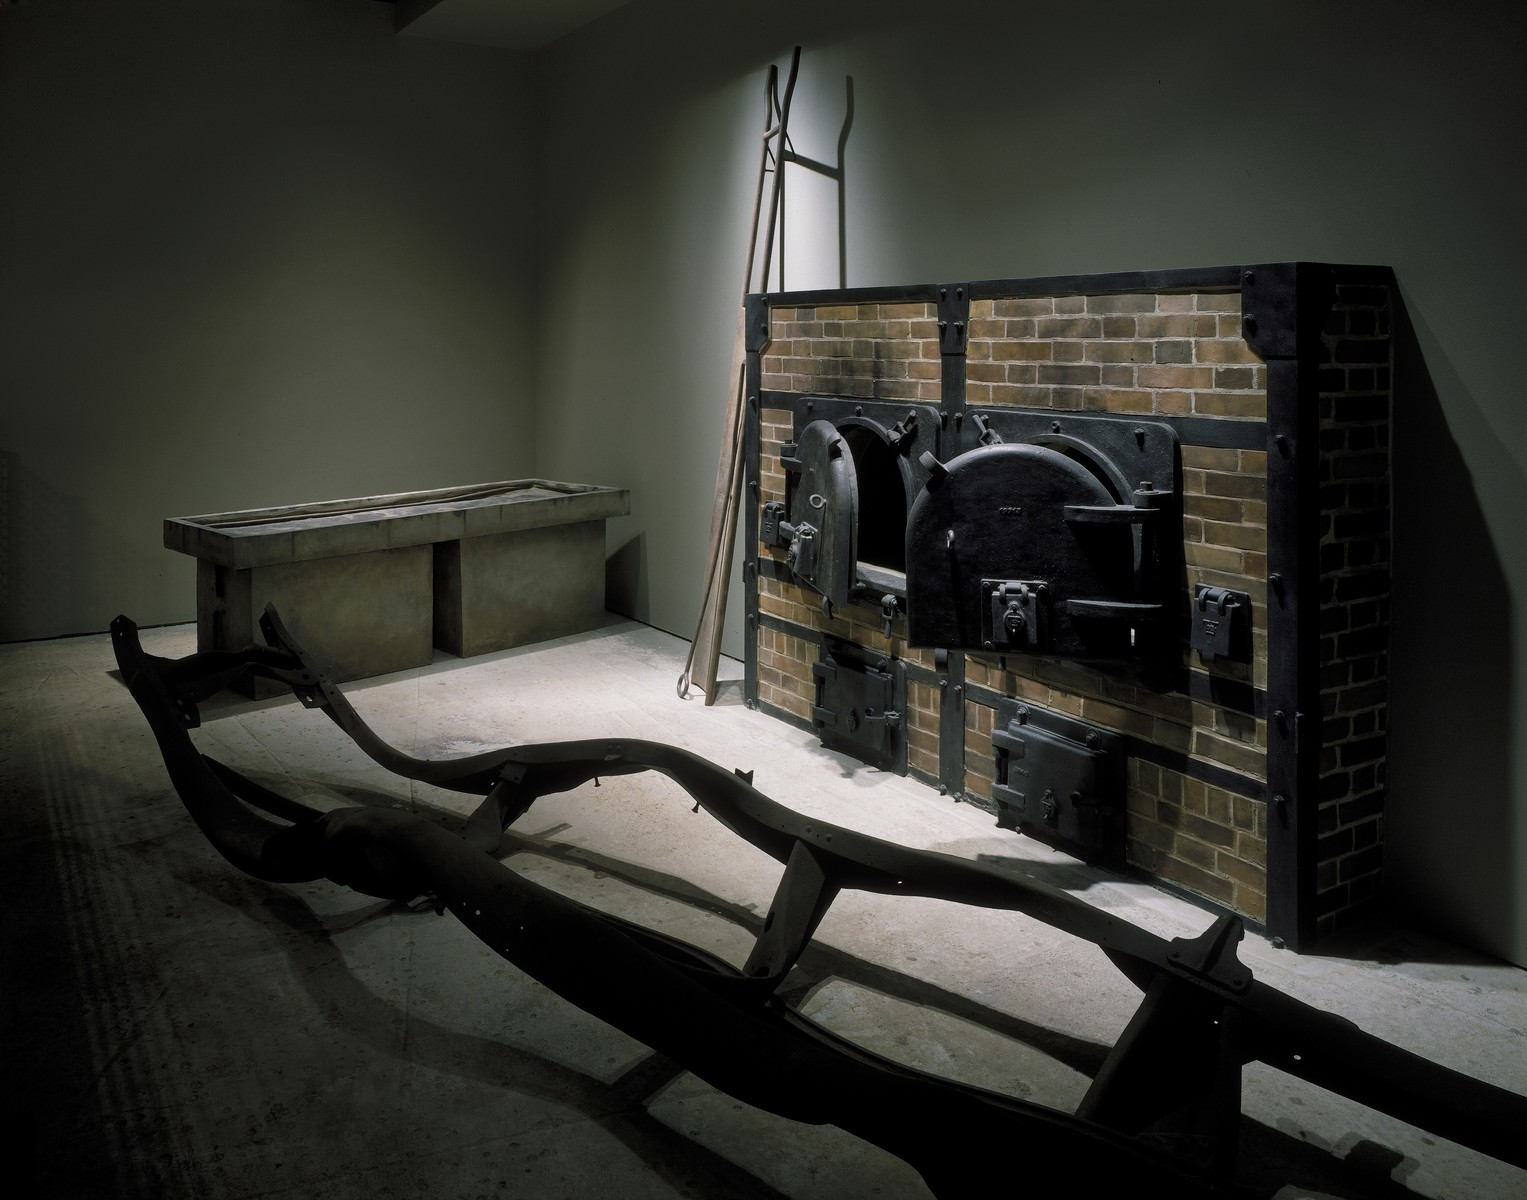 The dissecting table, casting of crematoria doors, crematoria implements, and twisted truck chassis on display in the third floor tower room of the permanent exhibition at the U.S. Holocaust Memorial Museum.